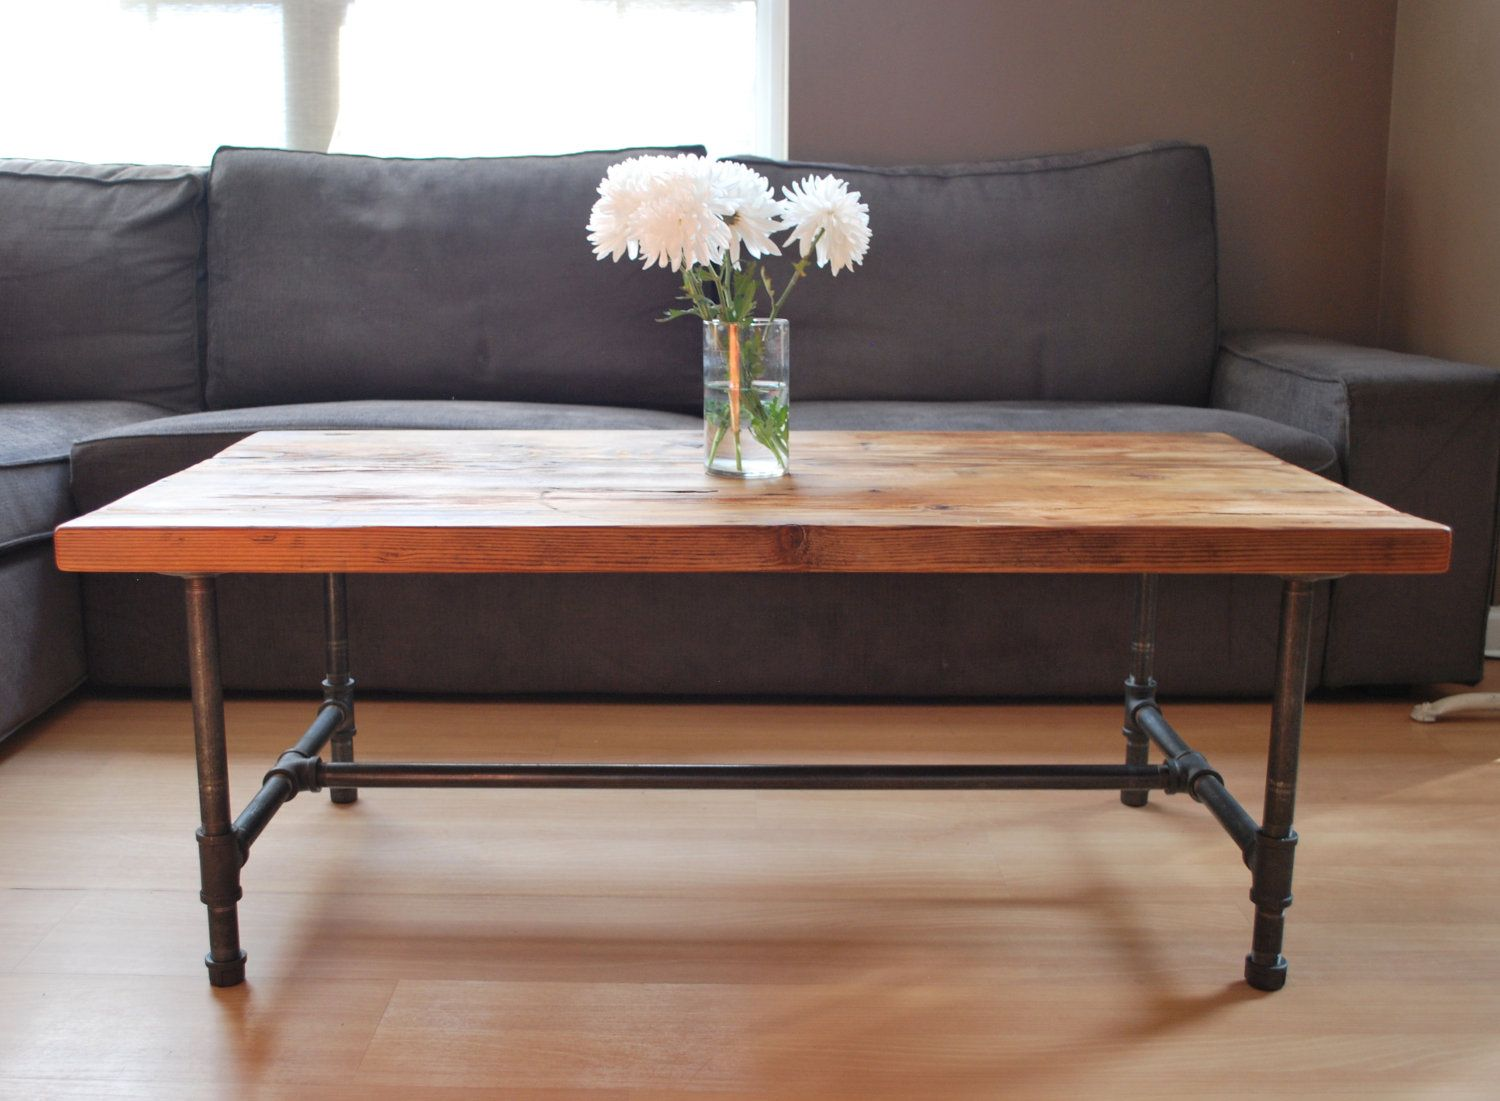 Wood Coffee Table With Steel Pipe Legs Made Of Reclaimed Wood Standard Top 18 Tall X 48 L